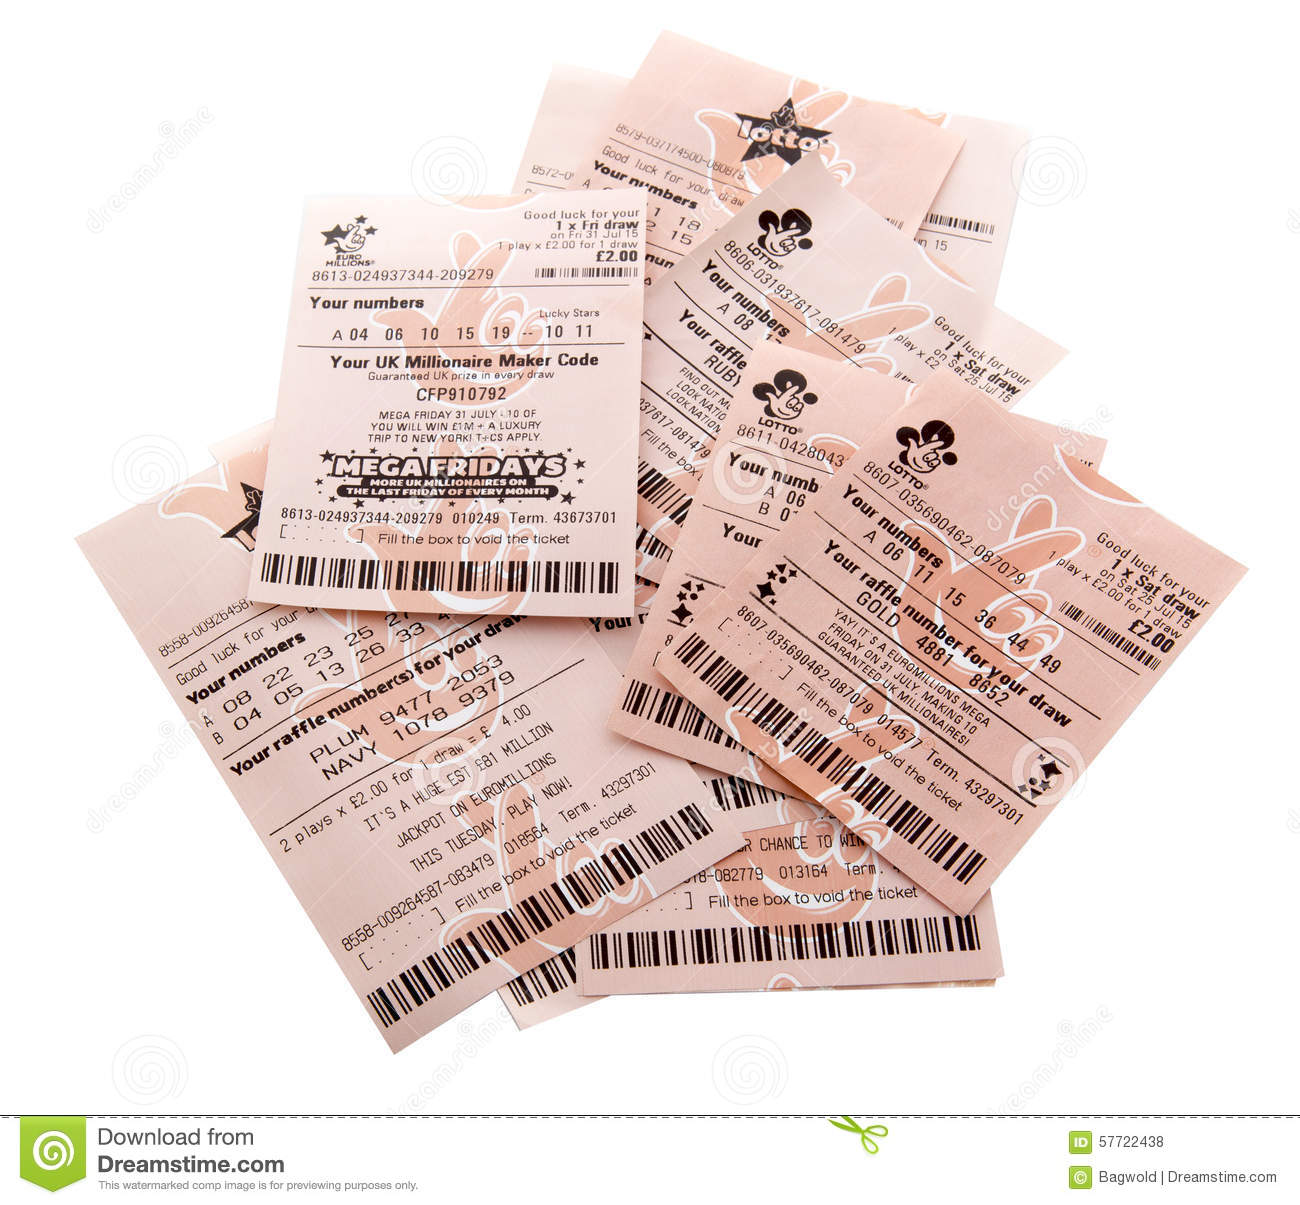 Lotto Euromillions Euromillions Editorial Stock Photo Image Of Community 57722438